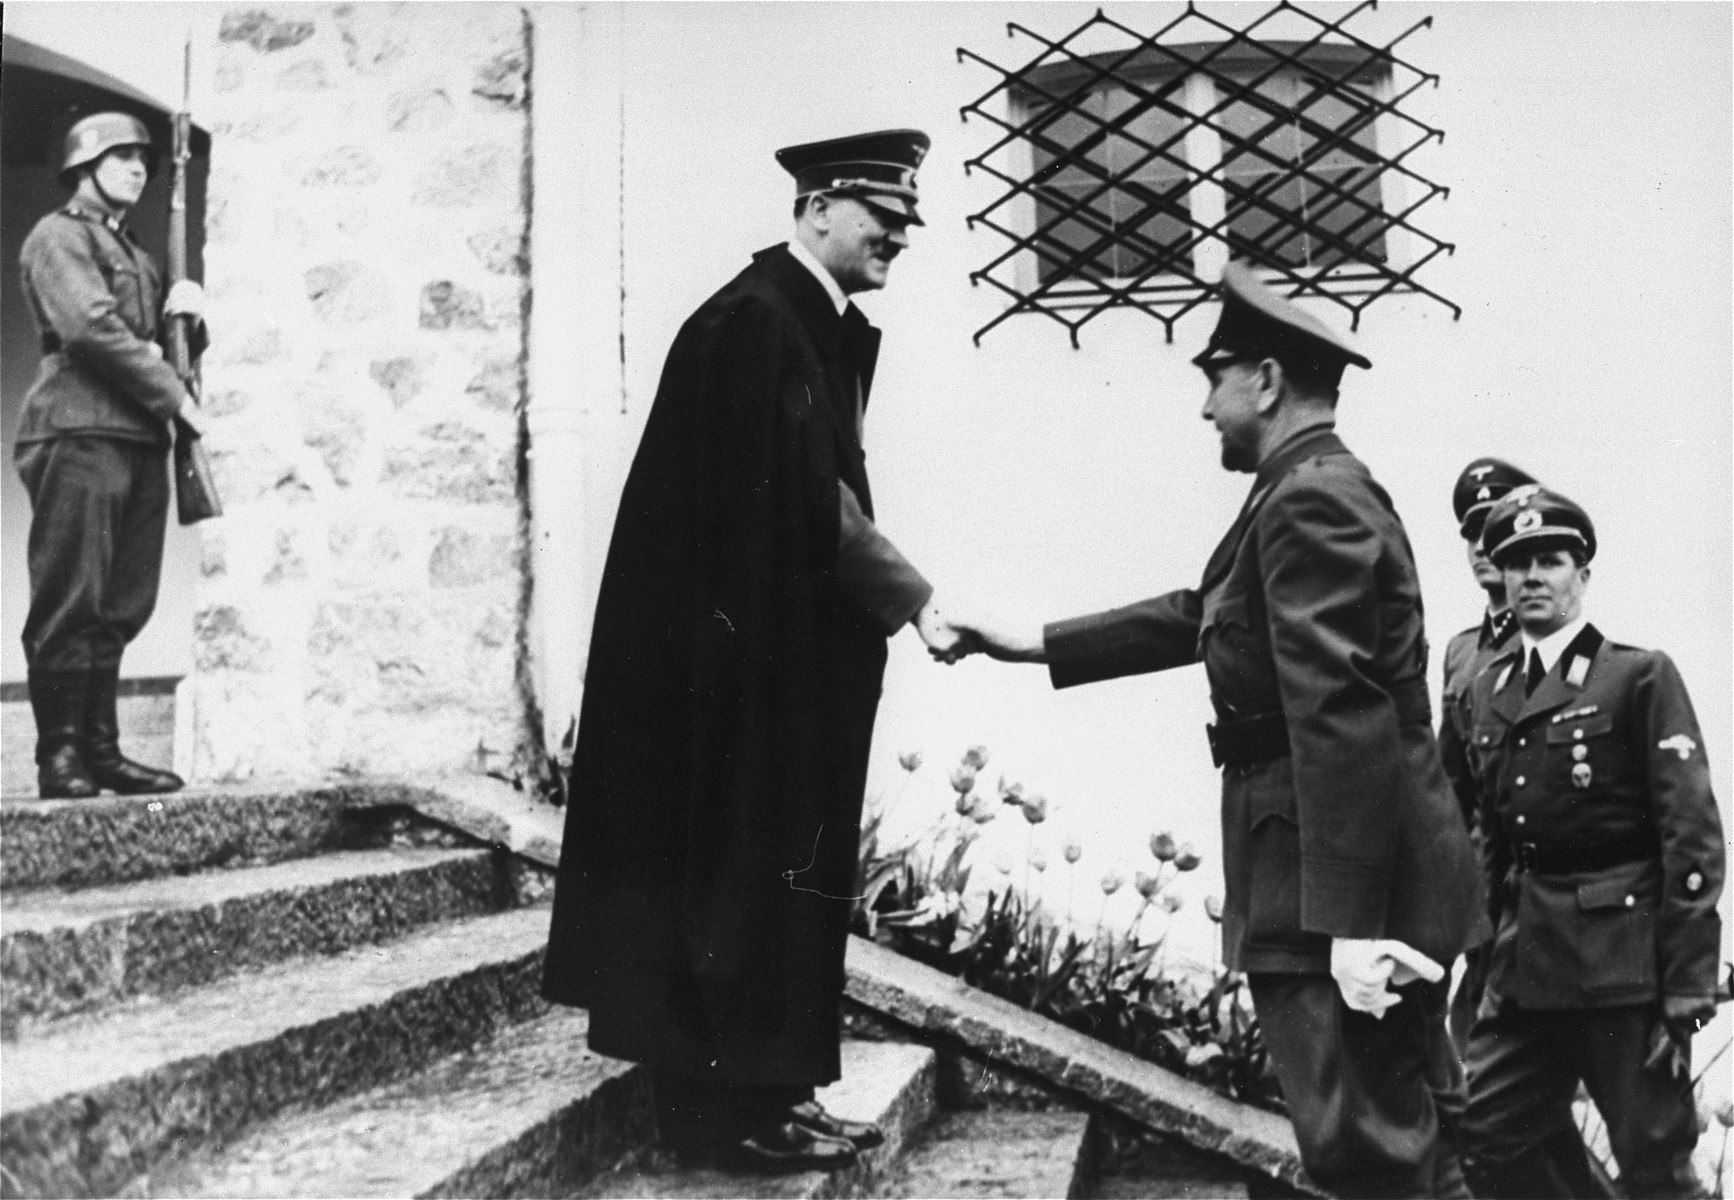 Adolf Hitler greets Ante Pavelic, leader of the Croatian puppet state, upon his arrival at the Berghof for a state visit.